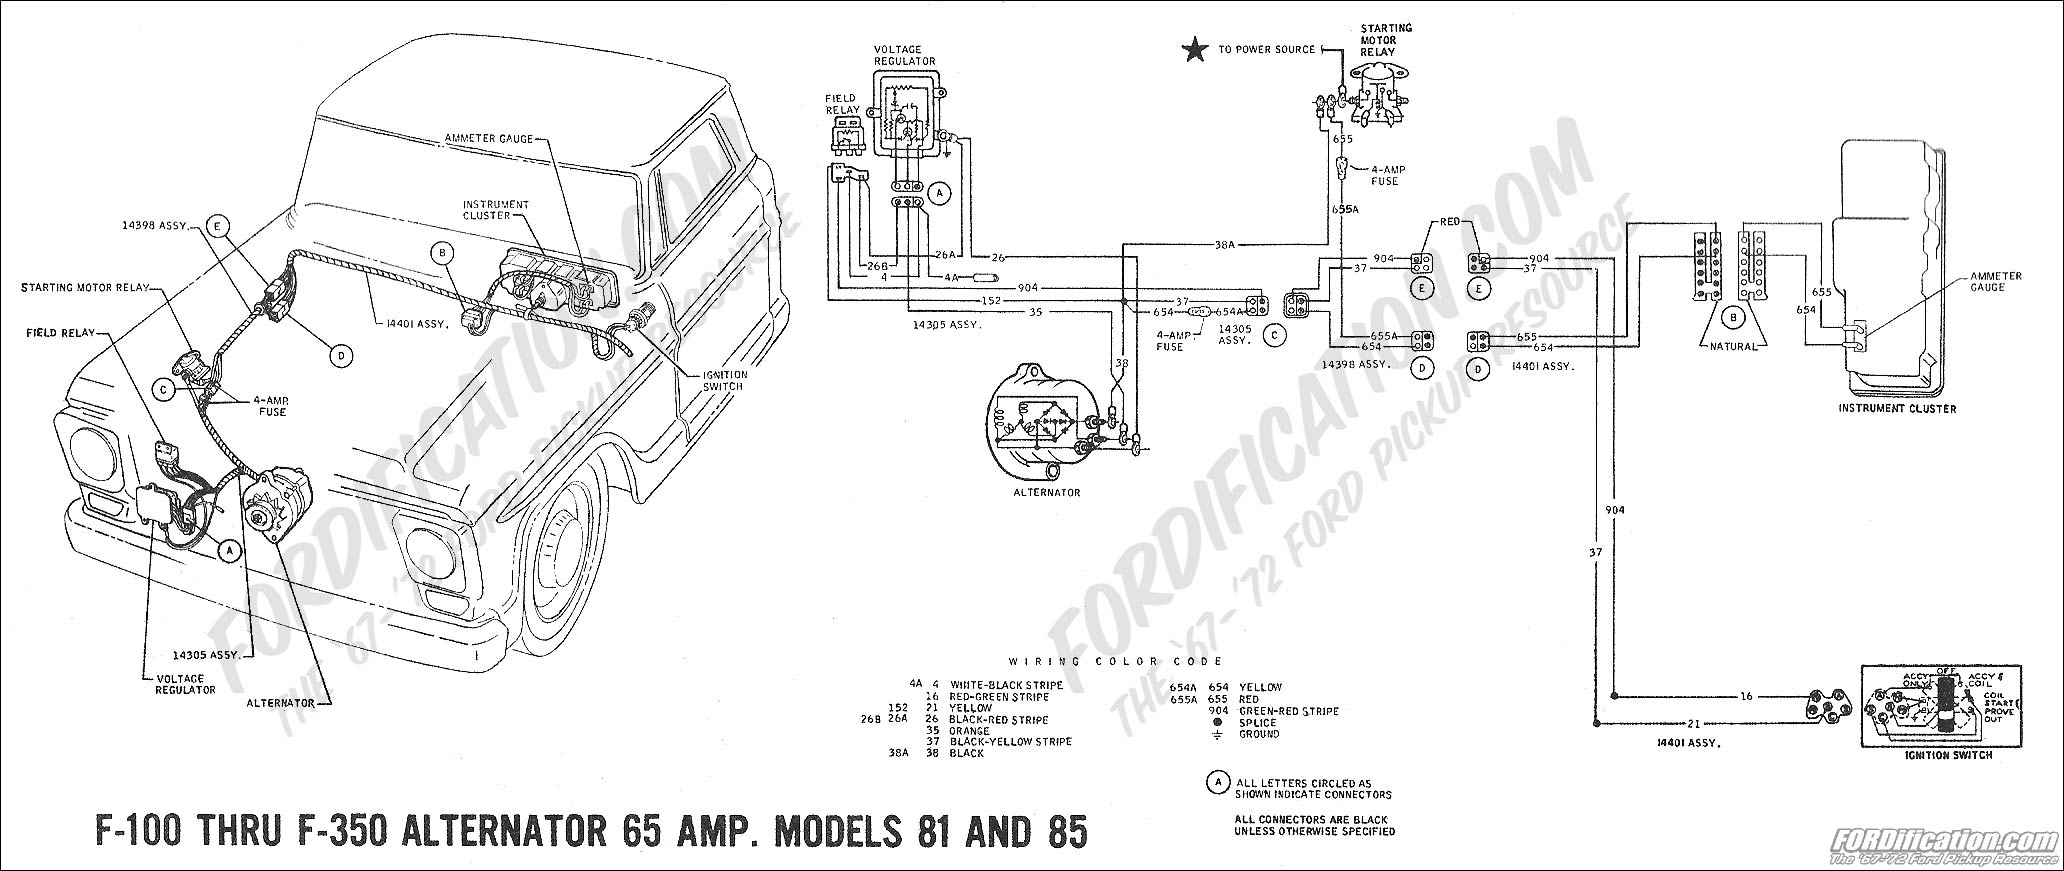 1982 Bronco Voltage Regulator Wiring Diagram Libraries 1987 Ford Mustang Alternator Truck Simple Schema1985 Third Level